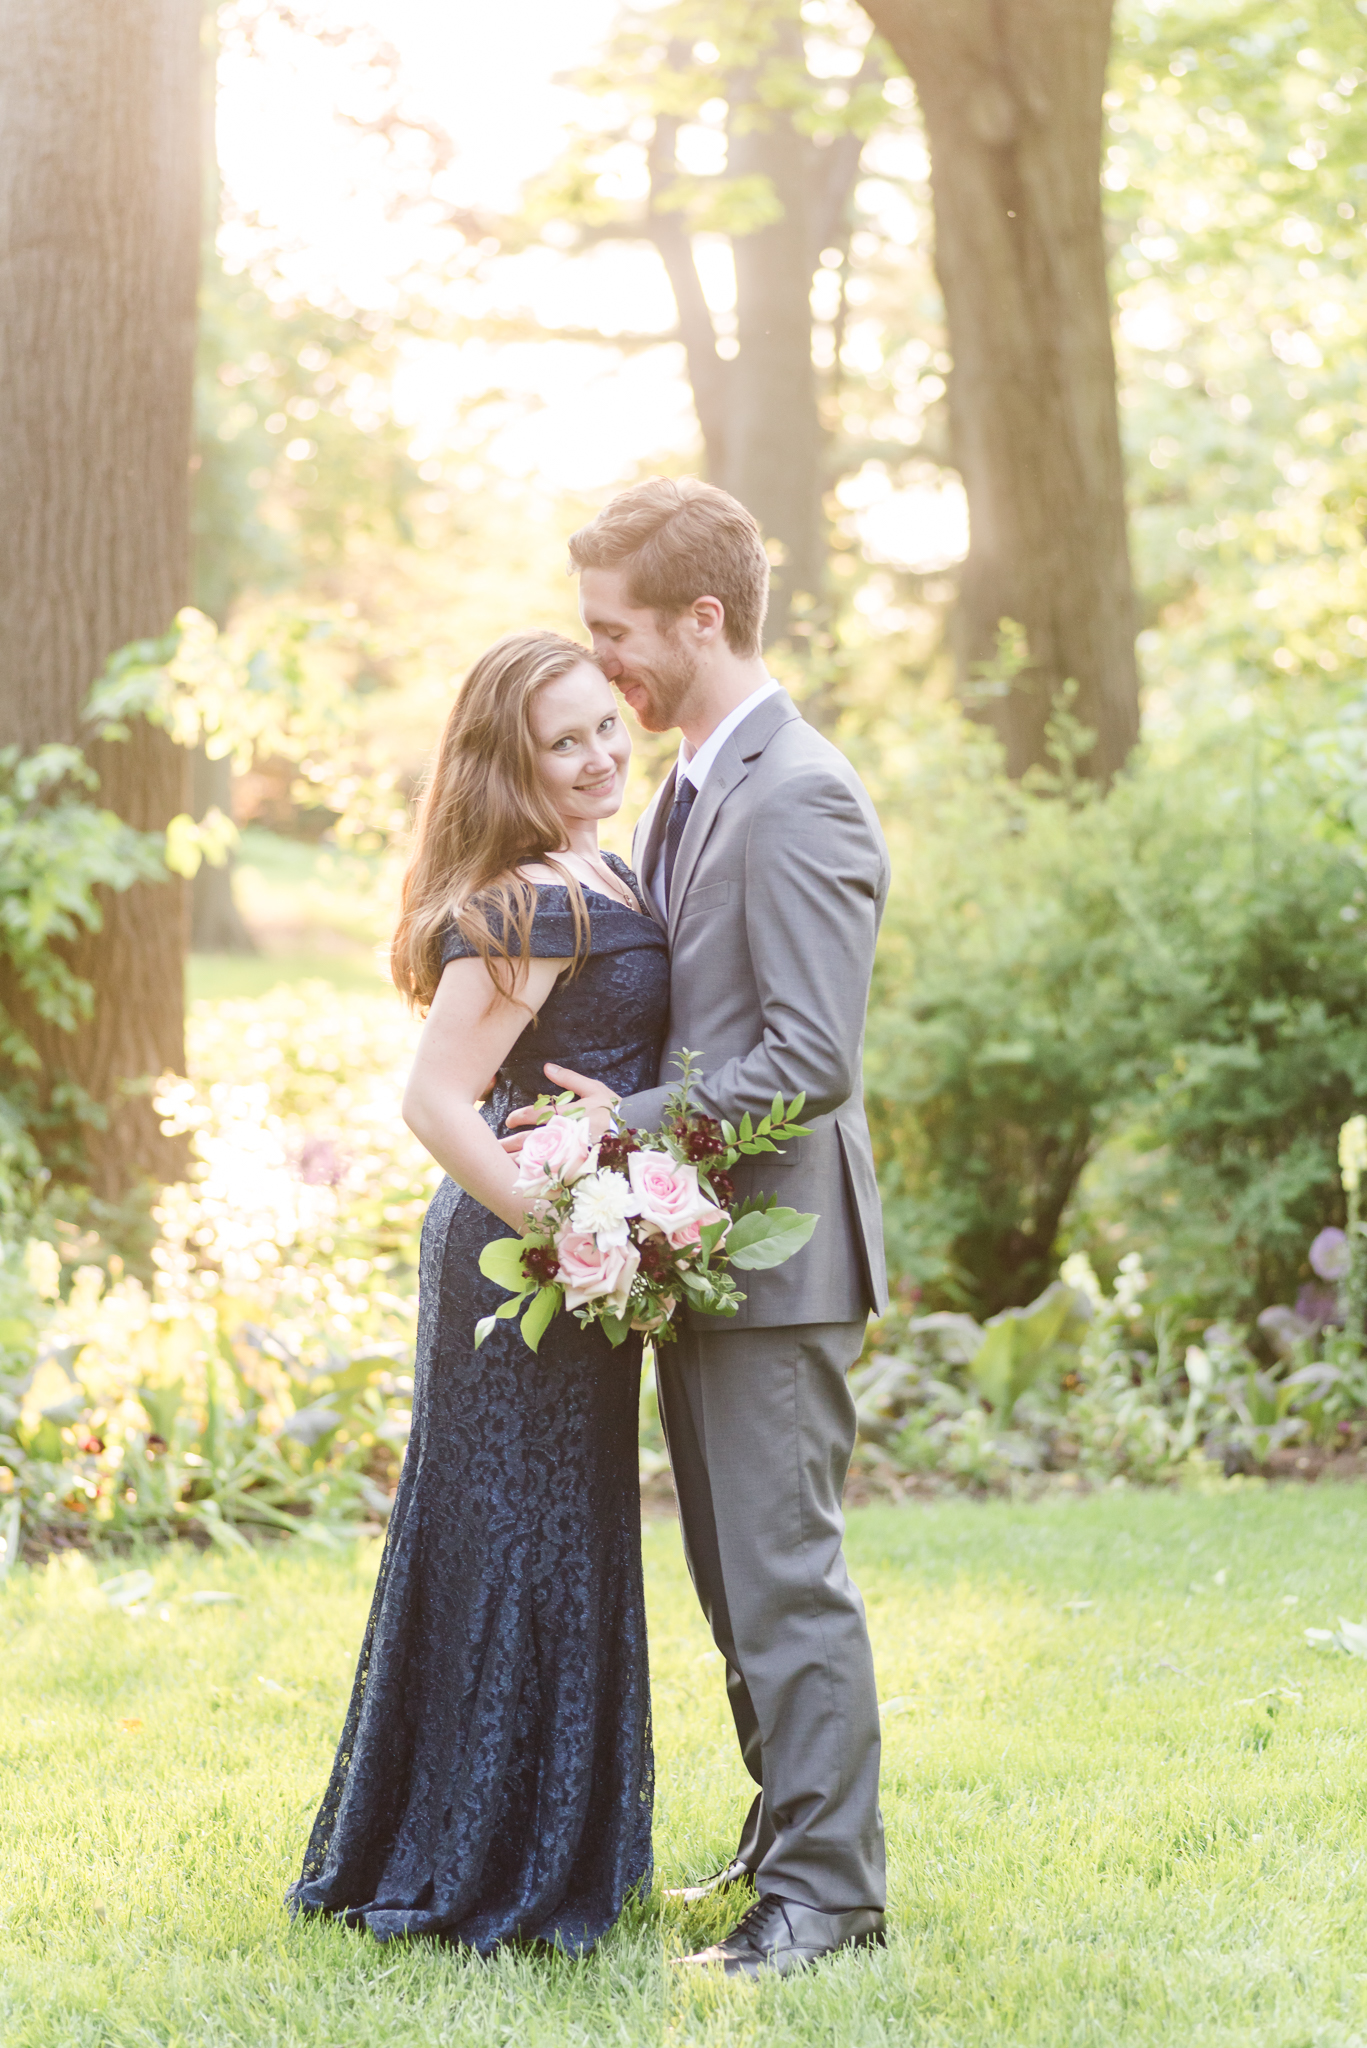 Spring Engagement Session at Newfields Indiana Museum of Art Wedding Photographer-18.jpg